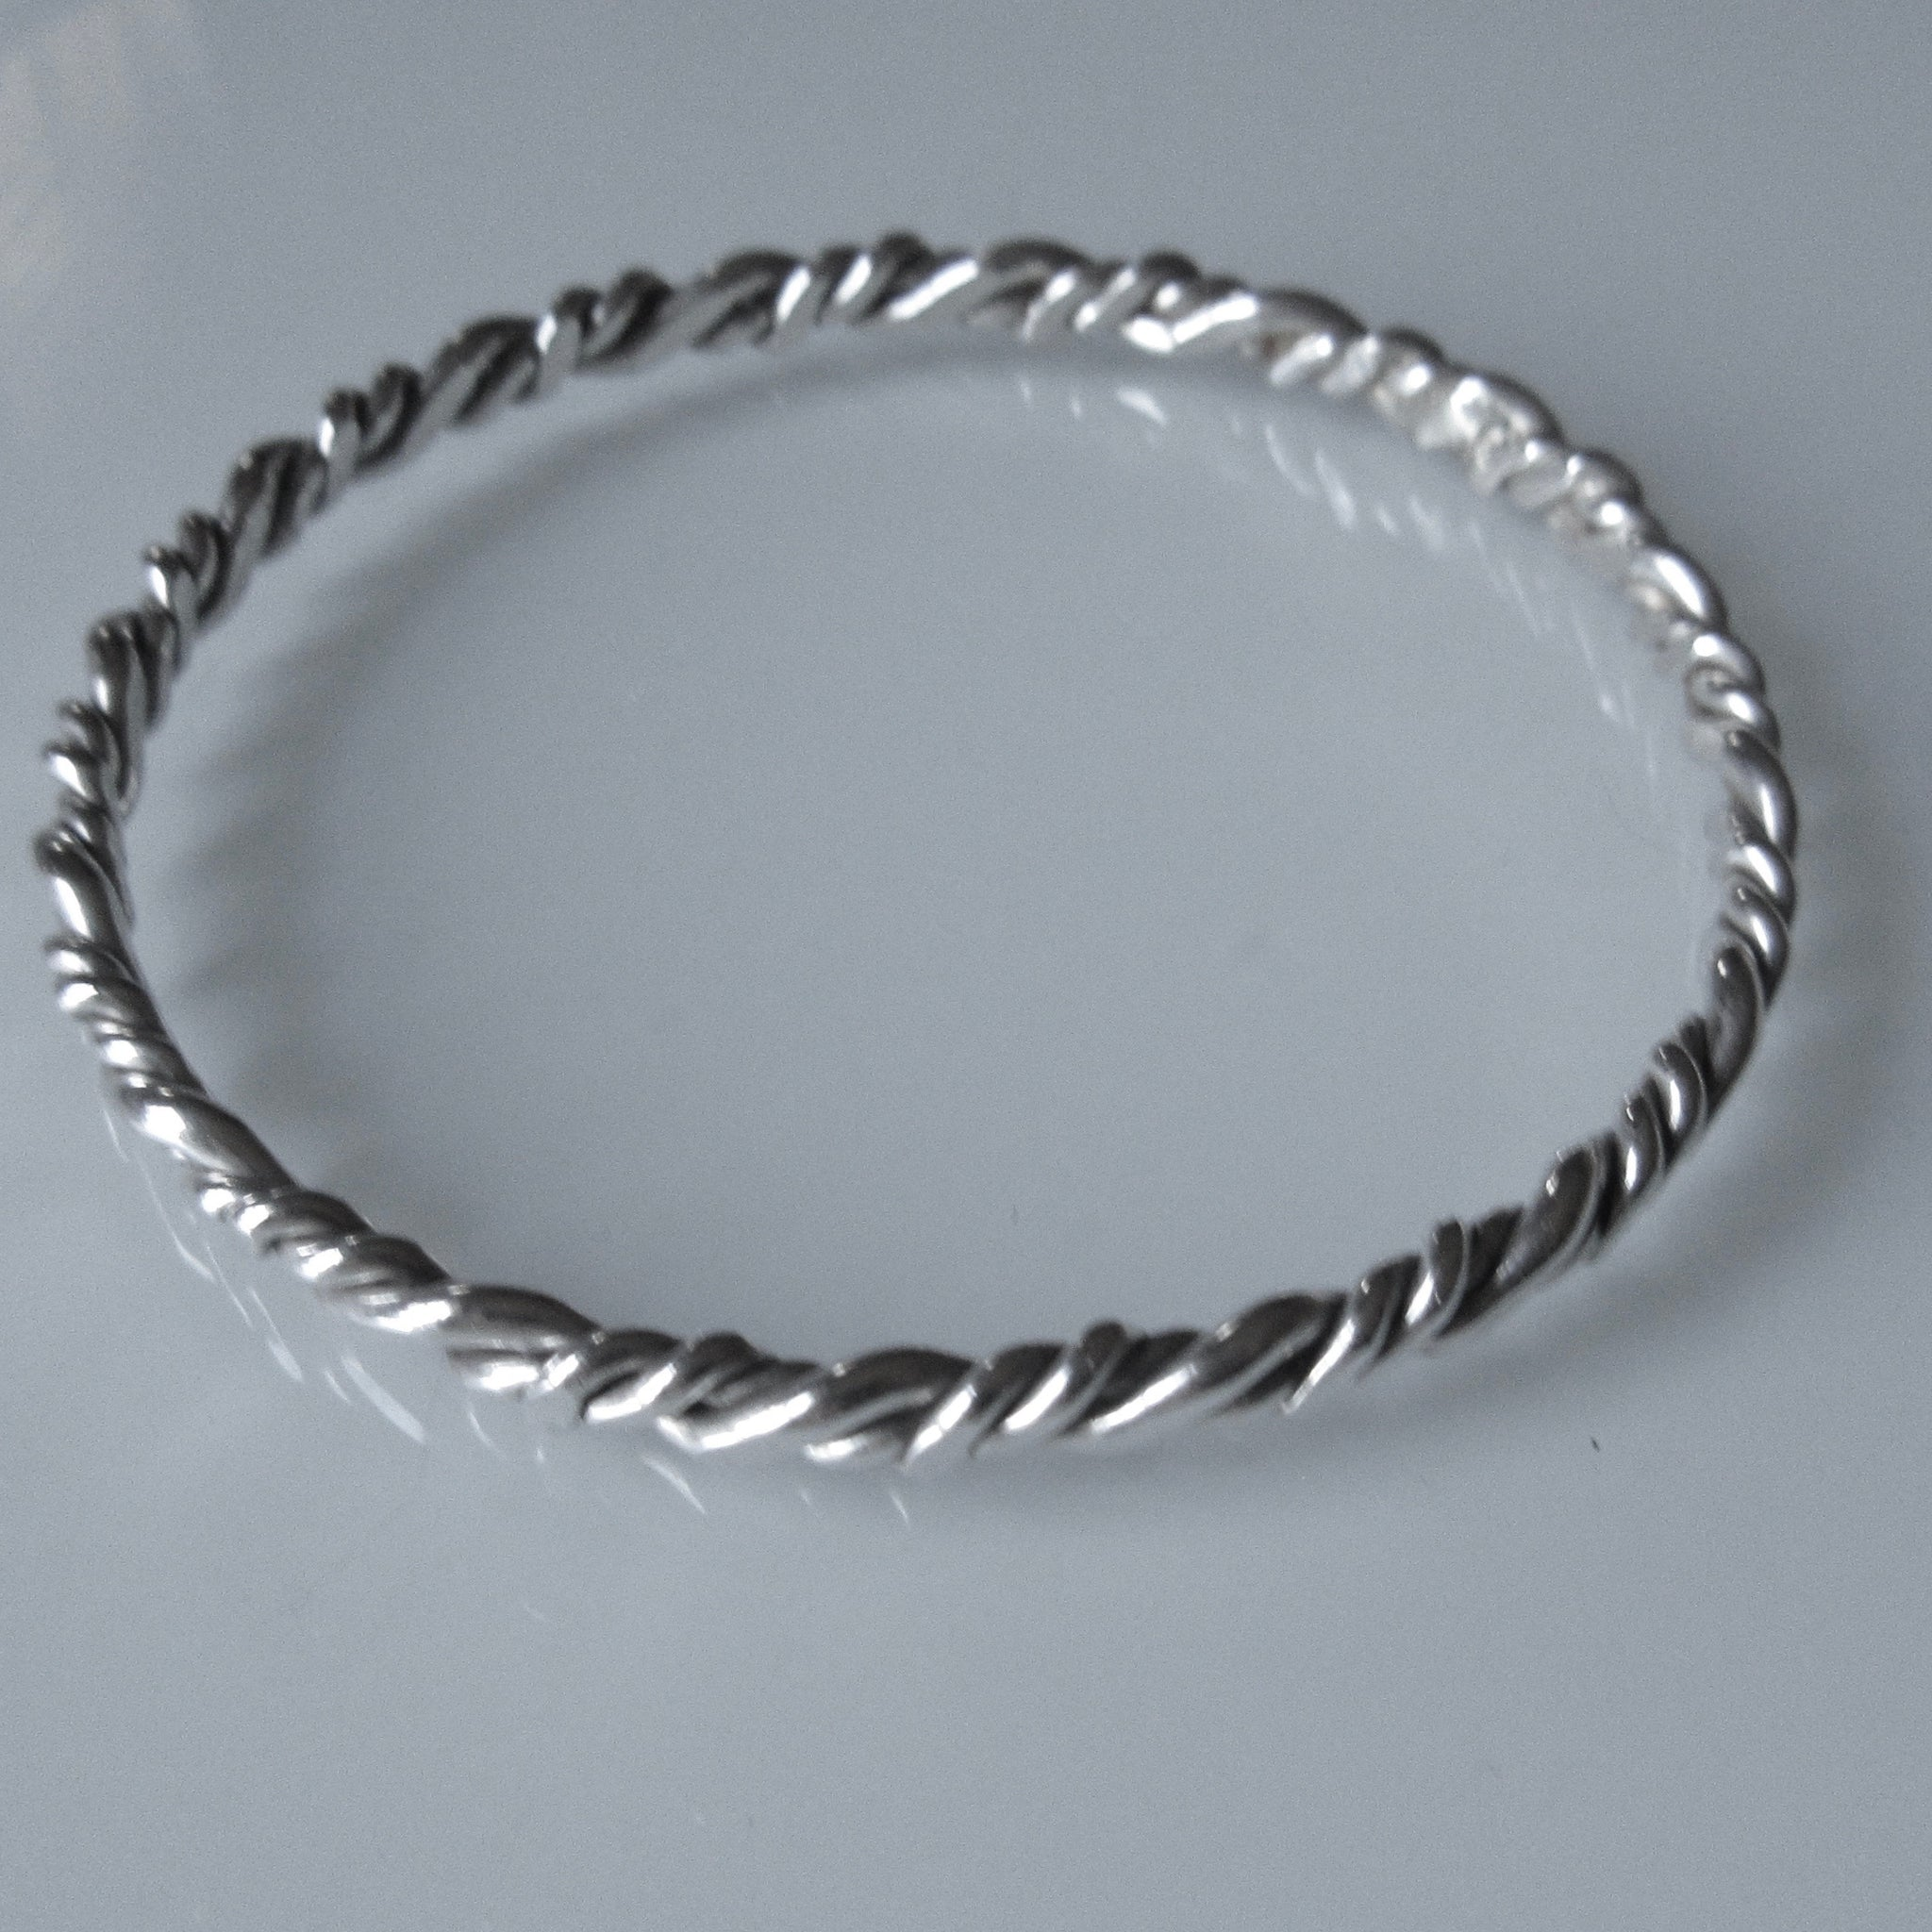 Wrapped Flat Sterling Silver Bangle